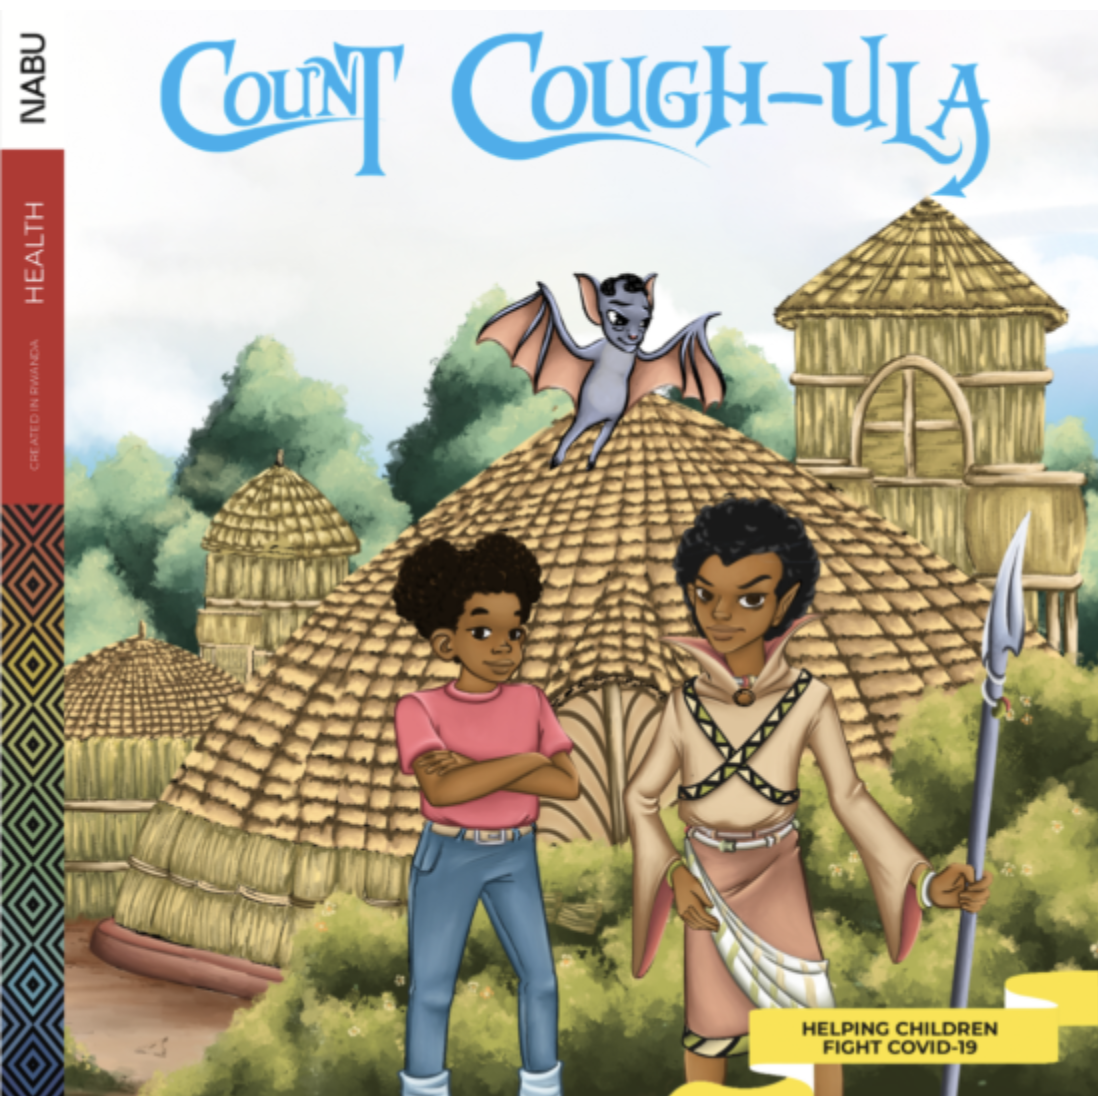 Count Cough-ula: Helping Children Fight COVID-19